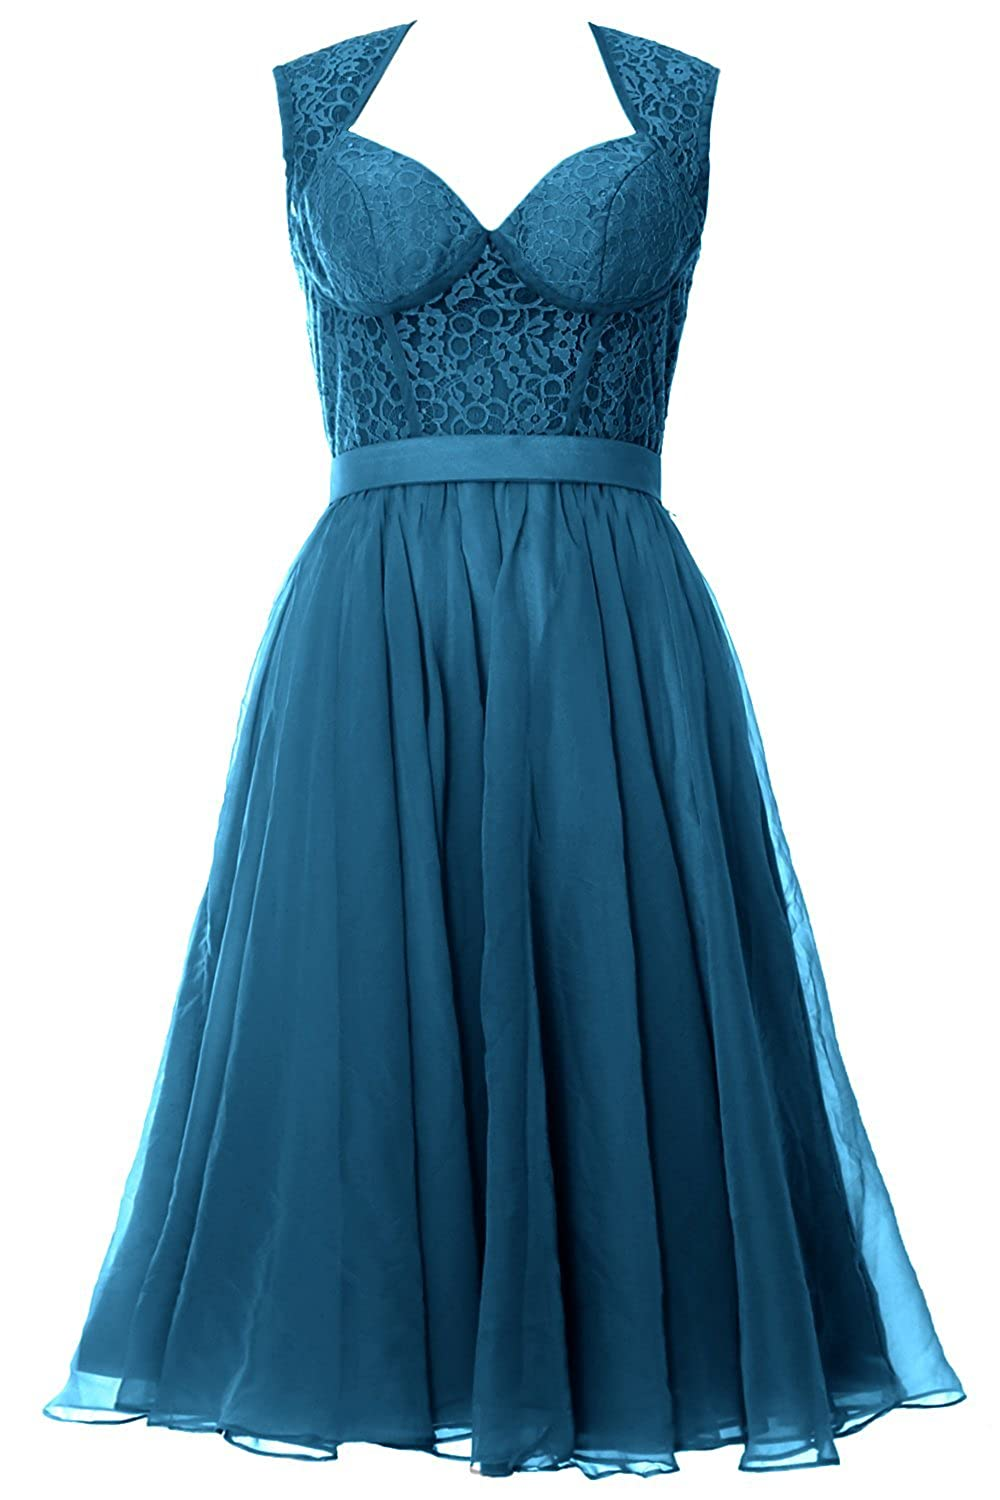 MACloth Women Chiffon Lace Illusion Short Prom Formal Dress Evening Party Gown